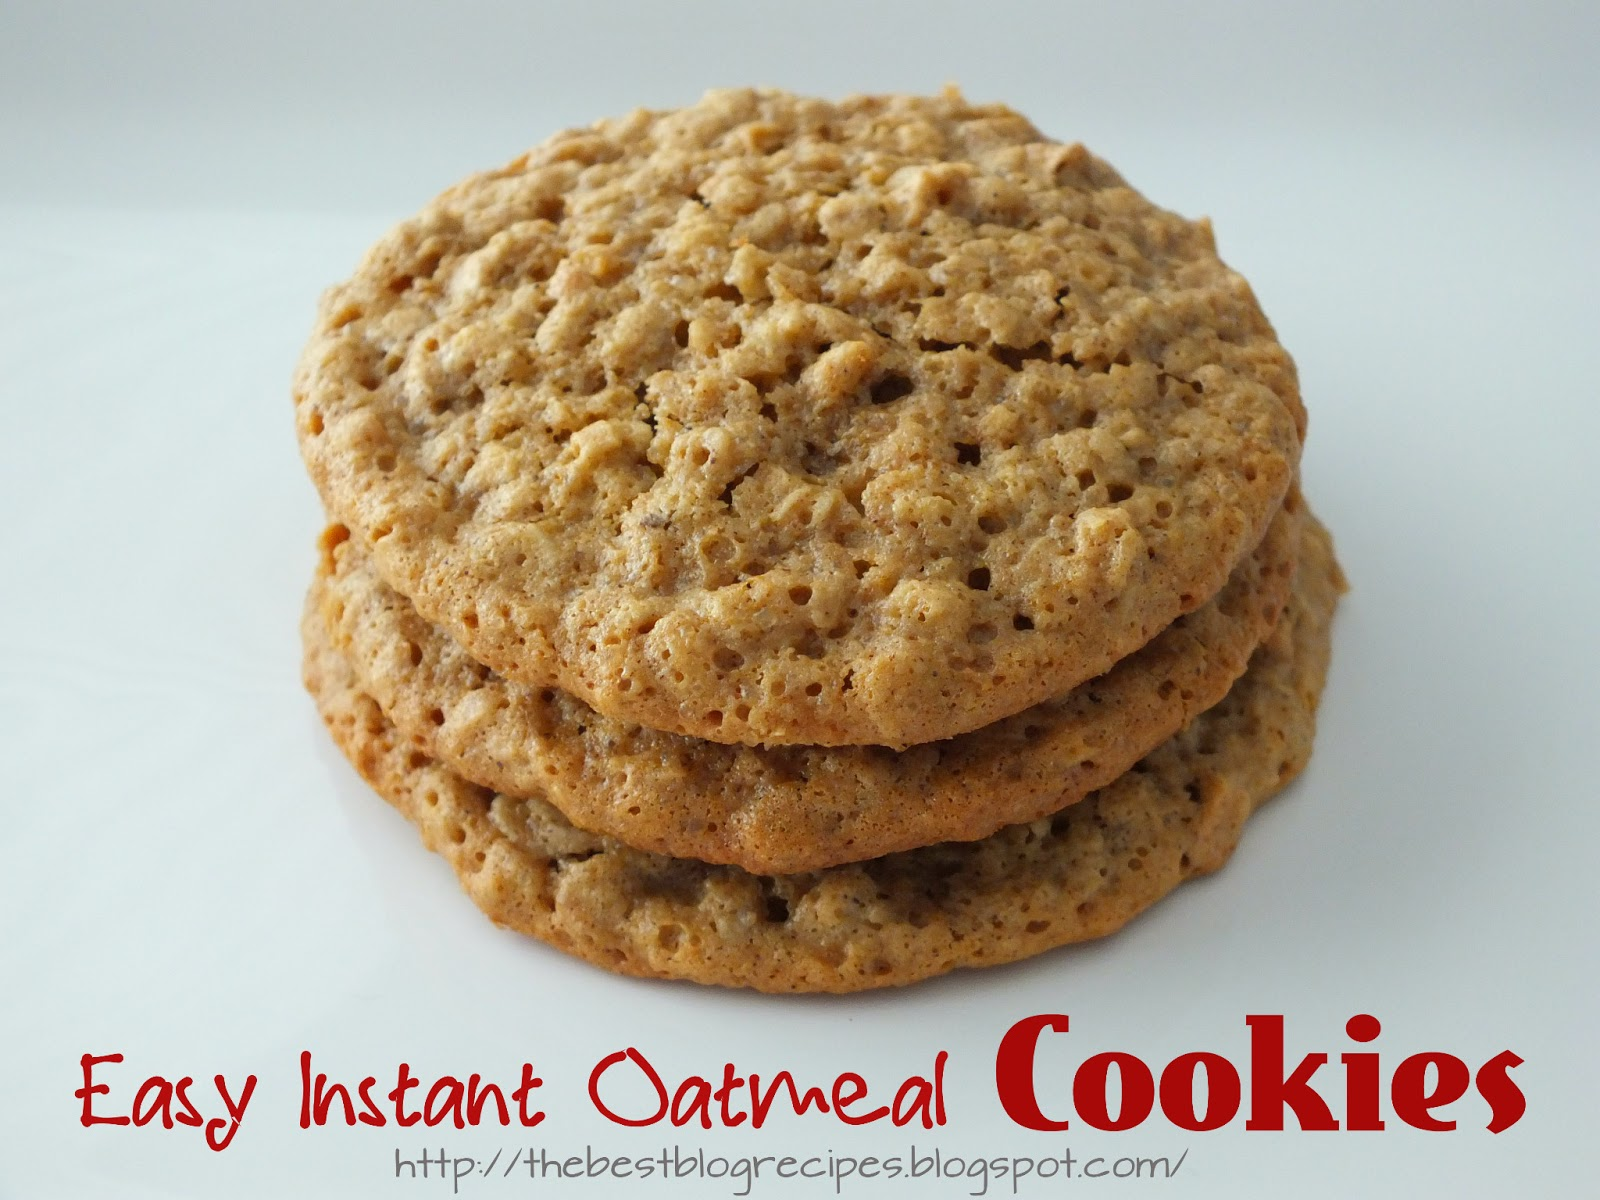 The Best Blog Recipes: Easy Instant Oatmeal Cookies